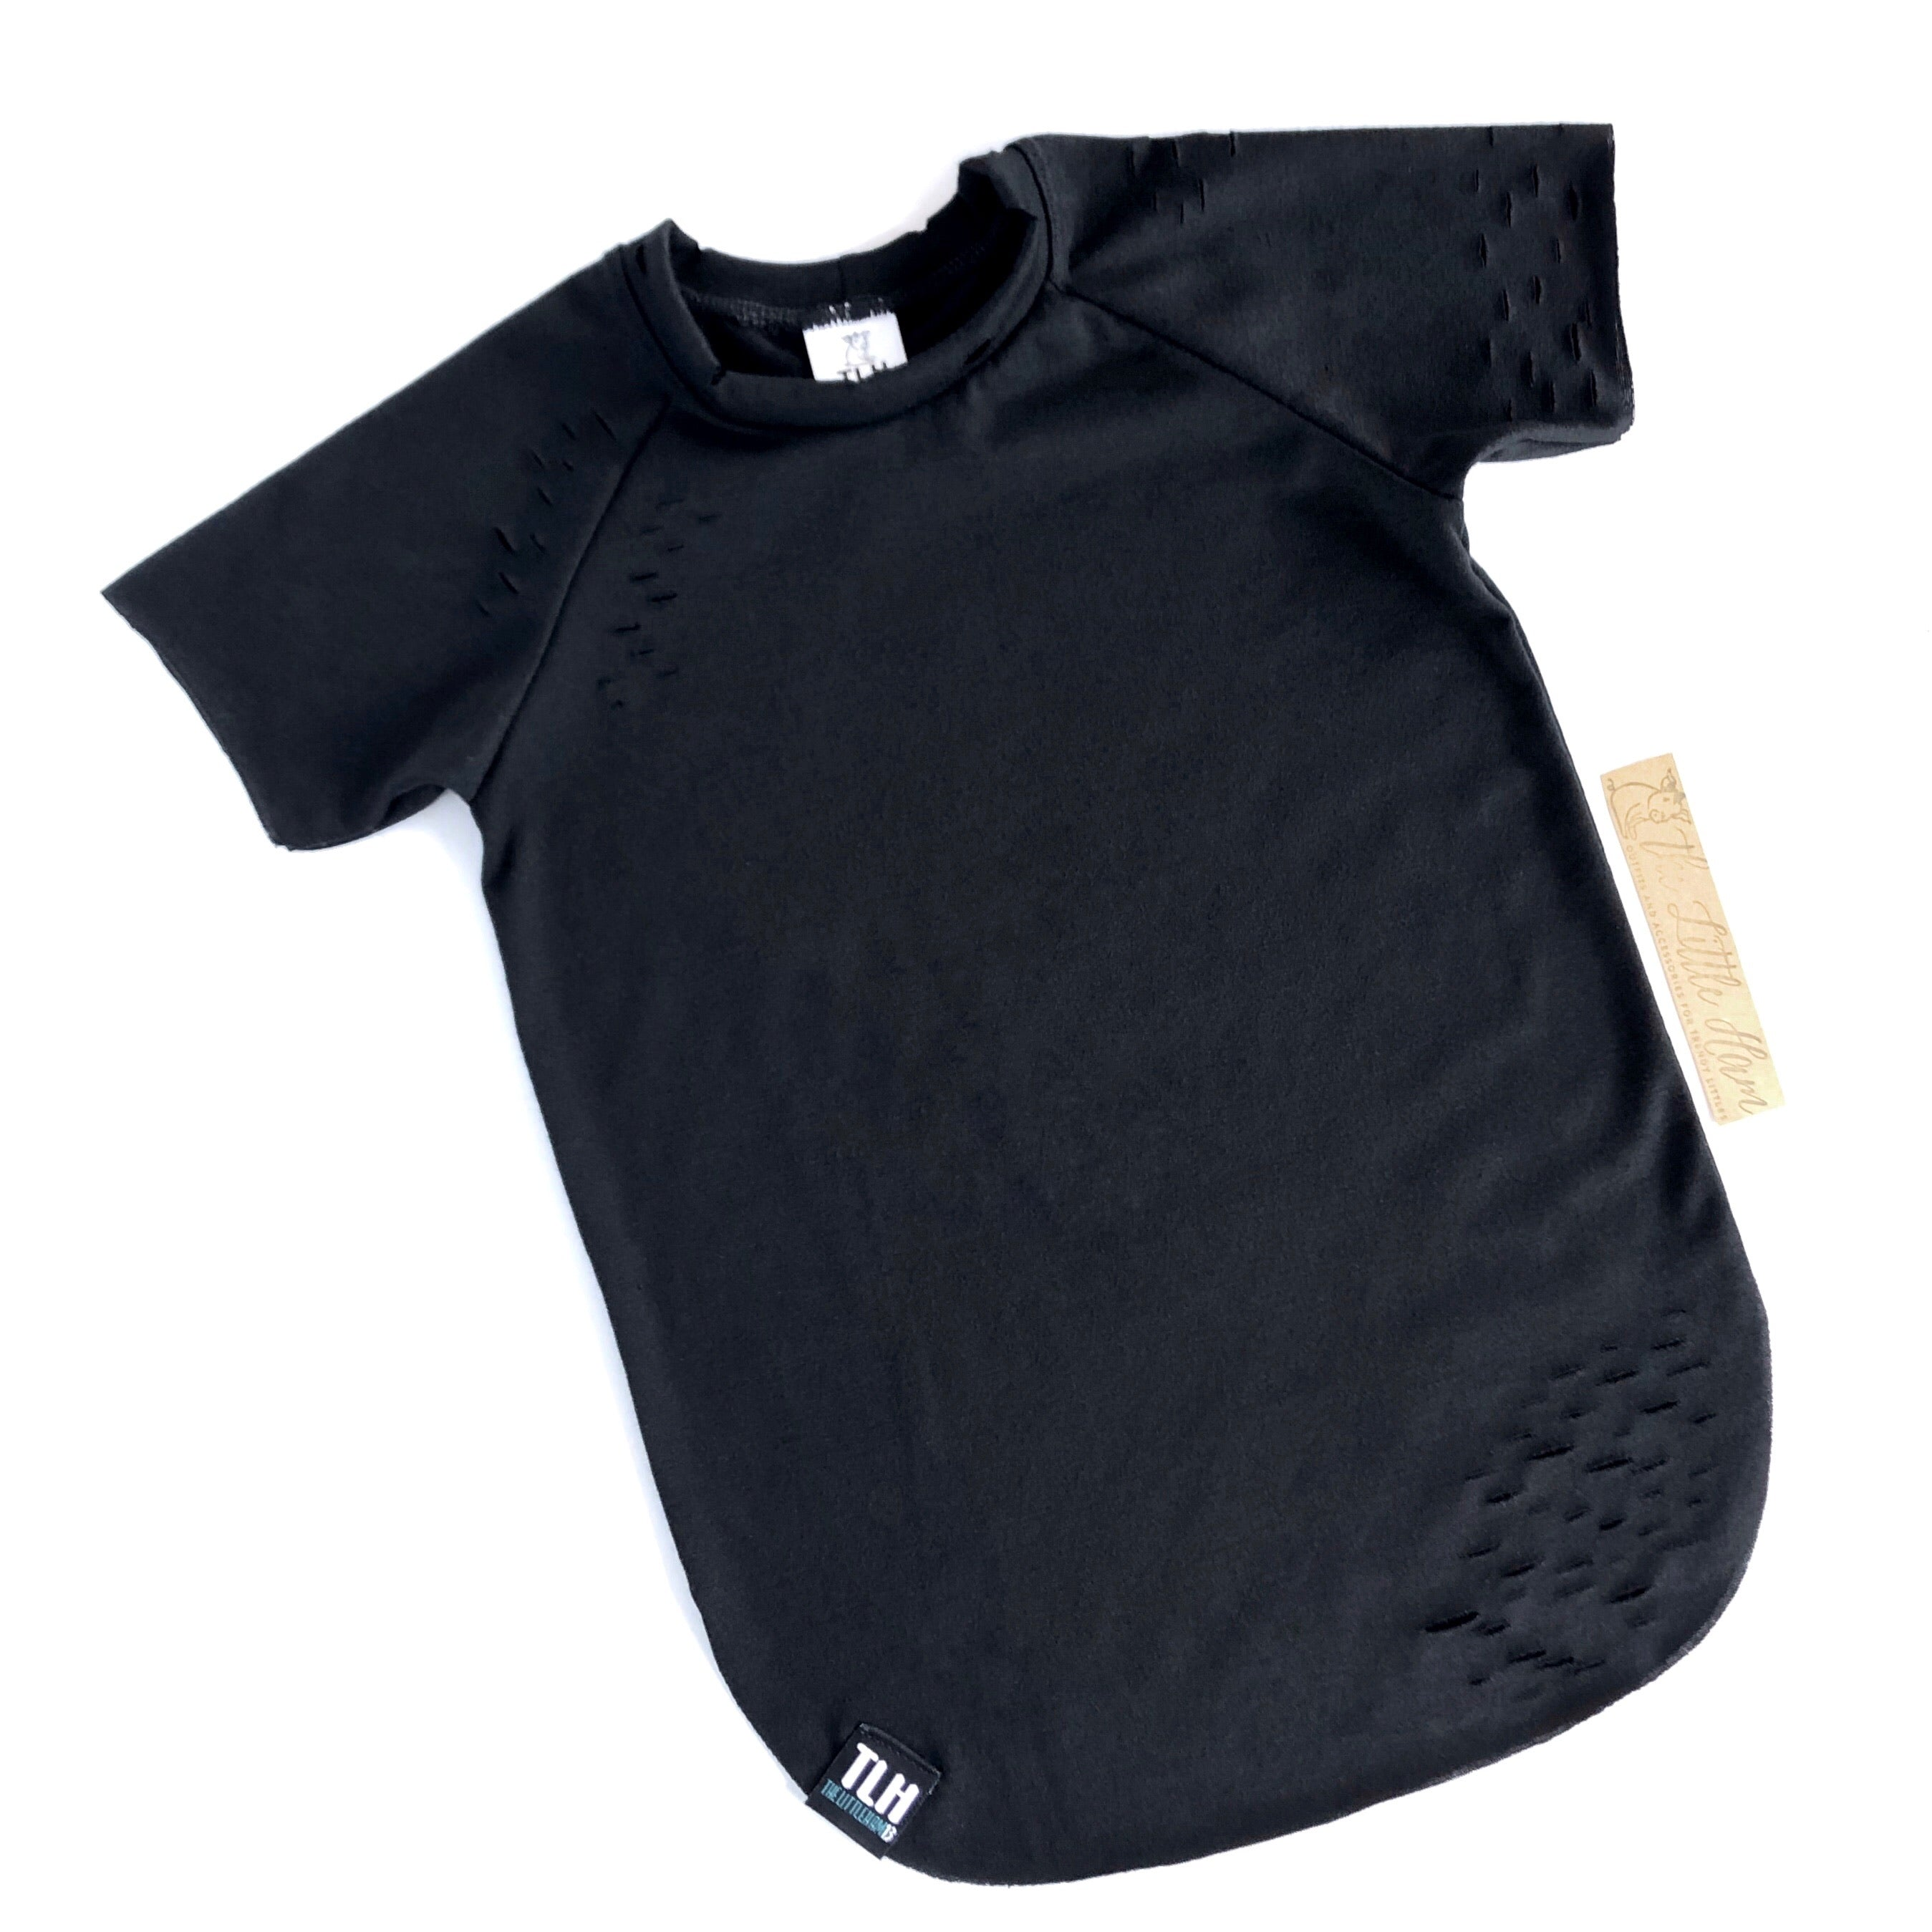 Black Distressed Tee